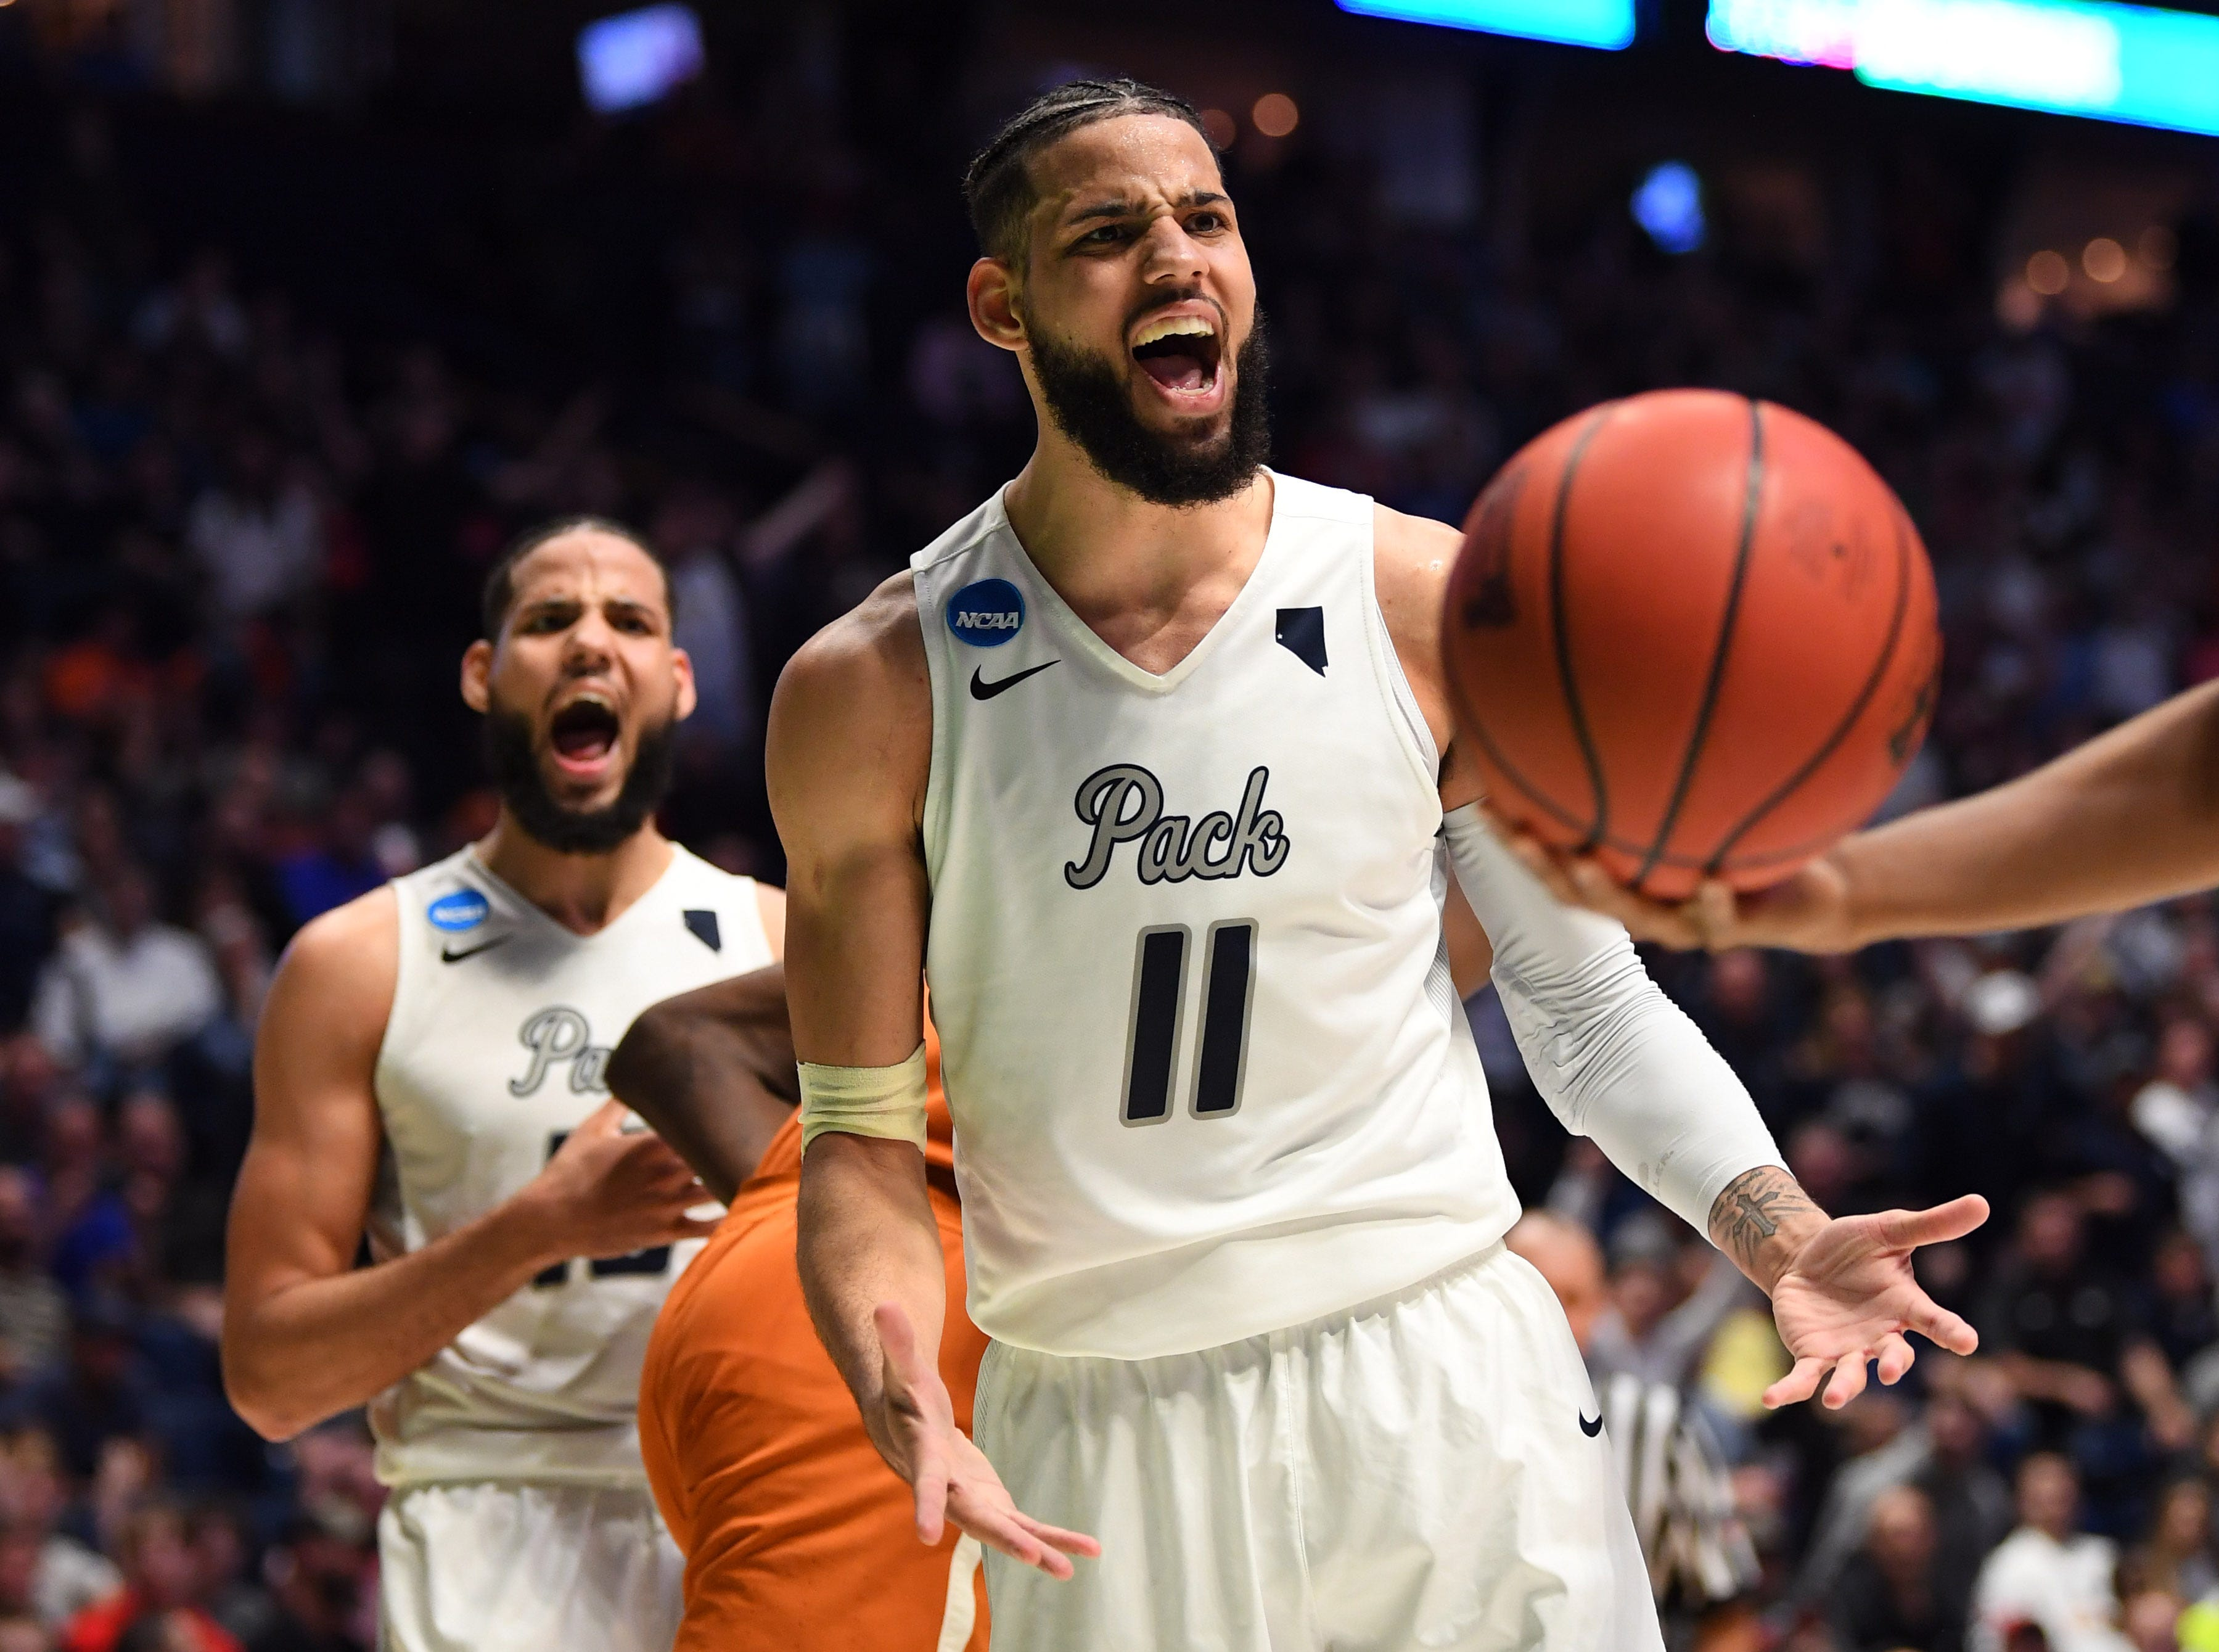 Nevada Wolf Pack forward Cody Martin (11) reacts during the second half against the Texas Longhorns in the first round of the 2018 NCAA Tournament at Bridgestone Arena.